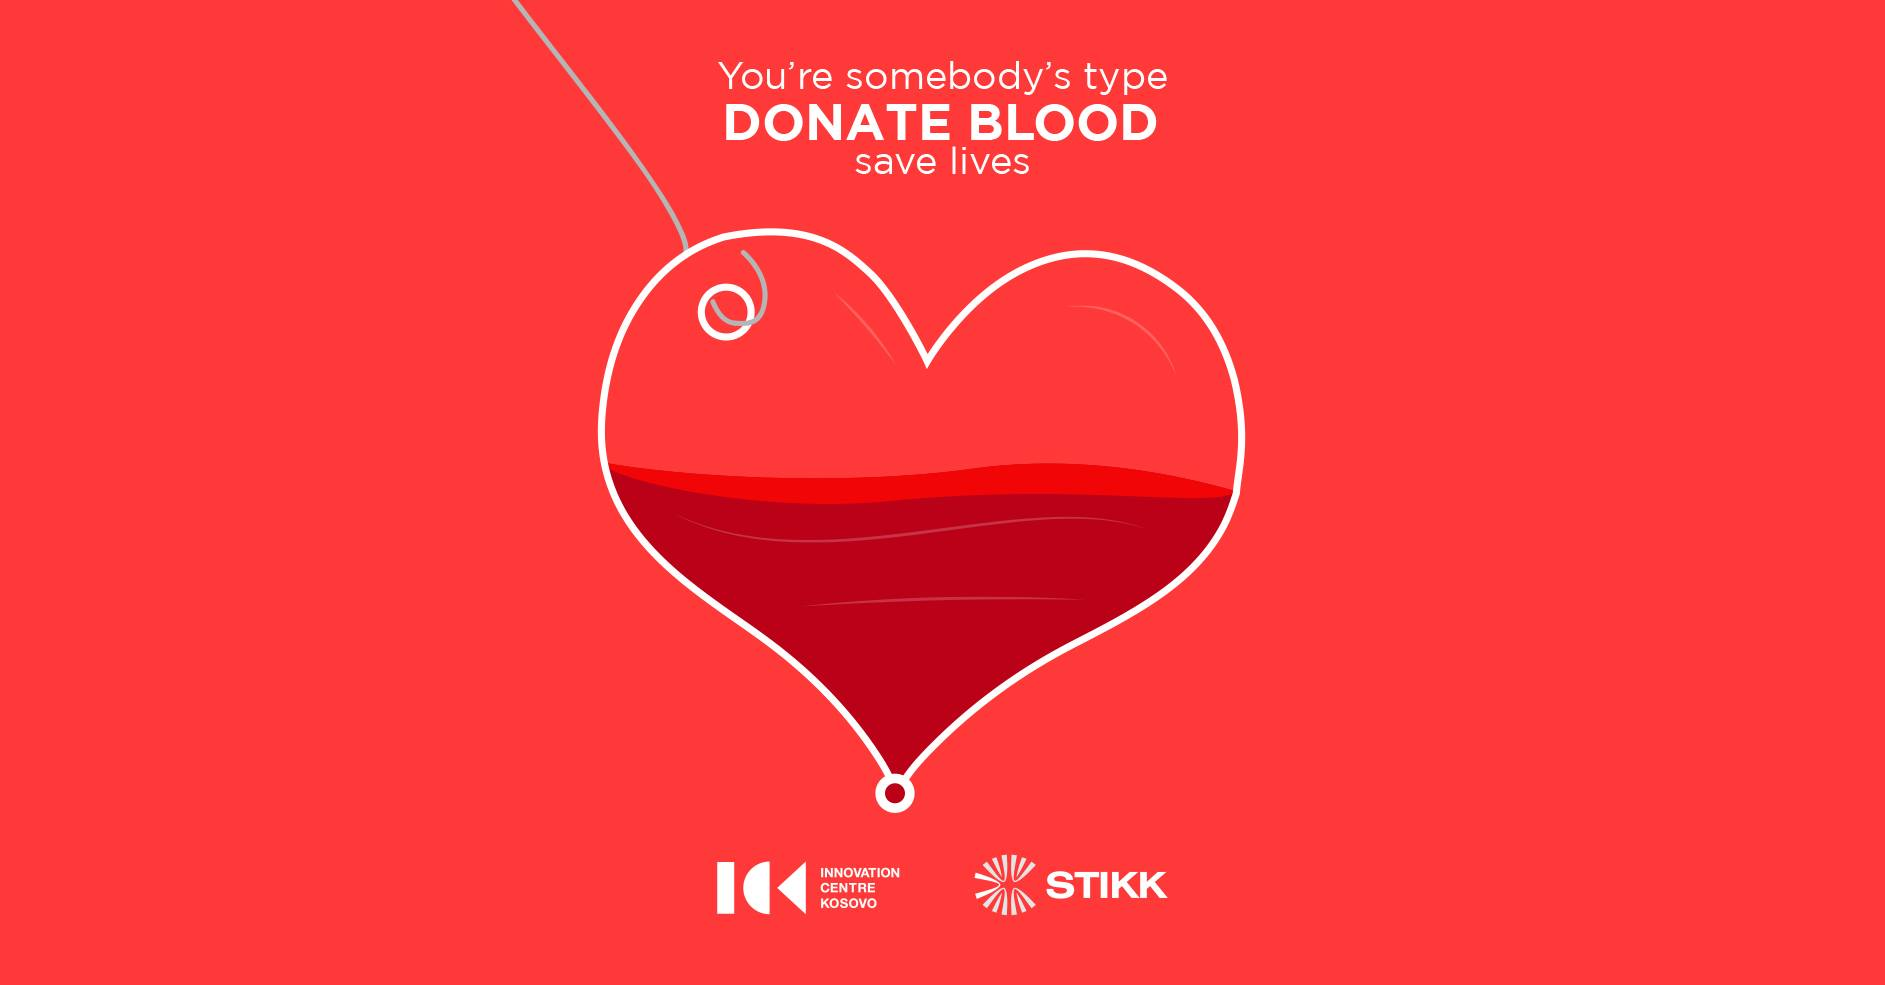 You're somebody's type. Donate blood. With love!